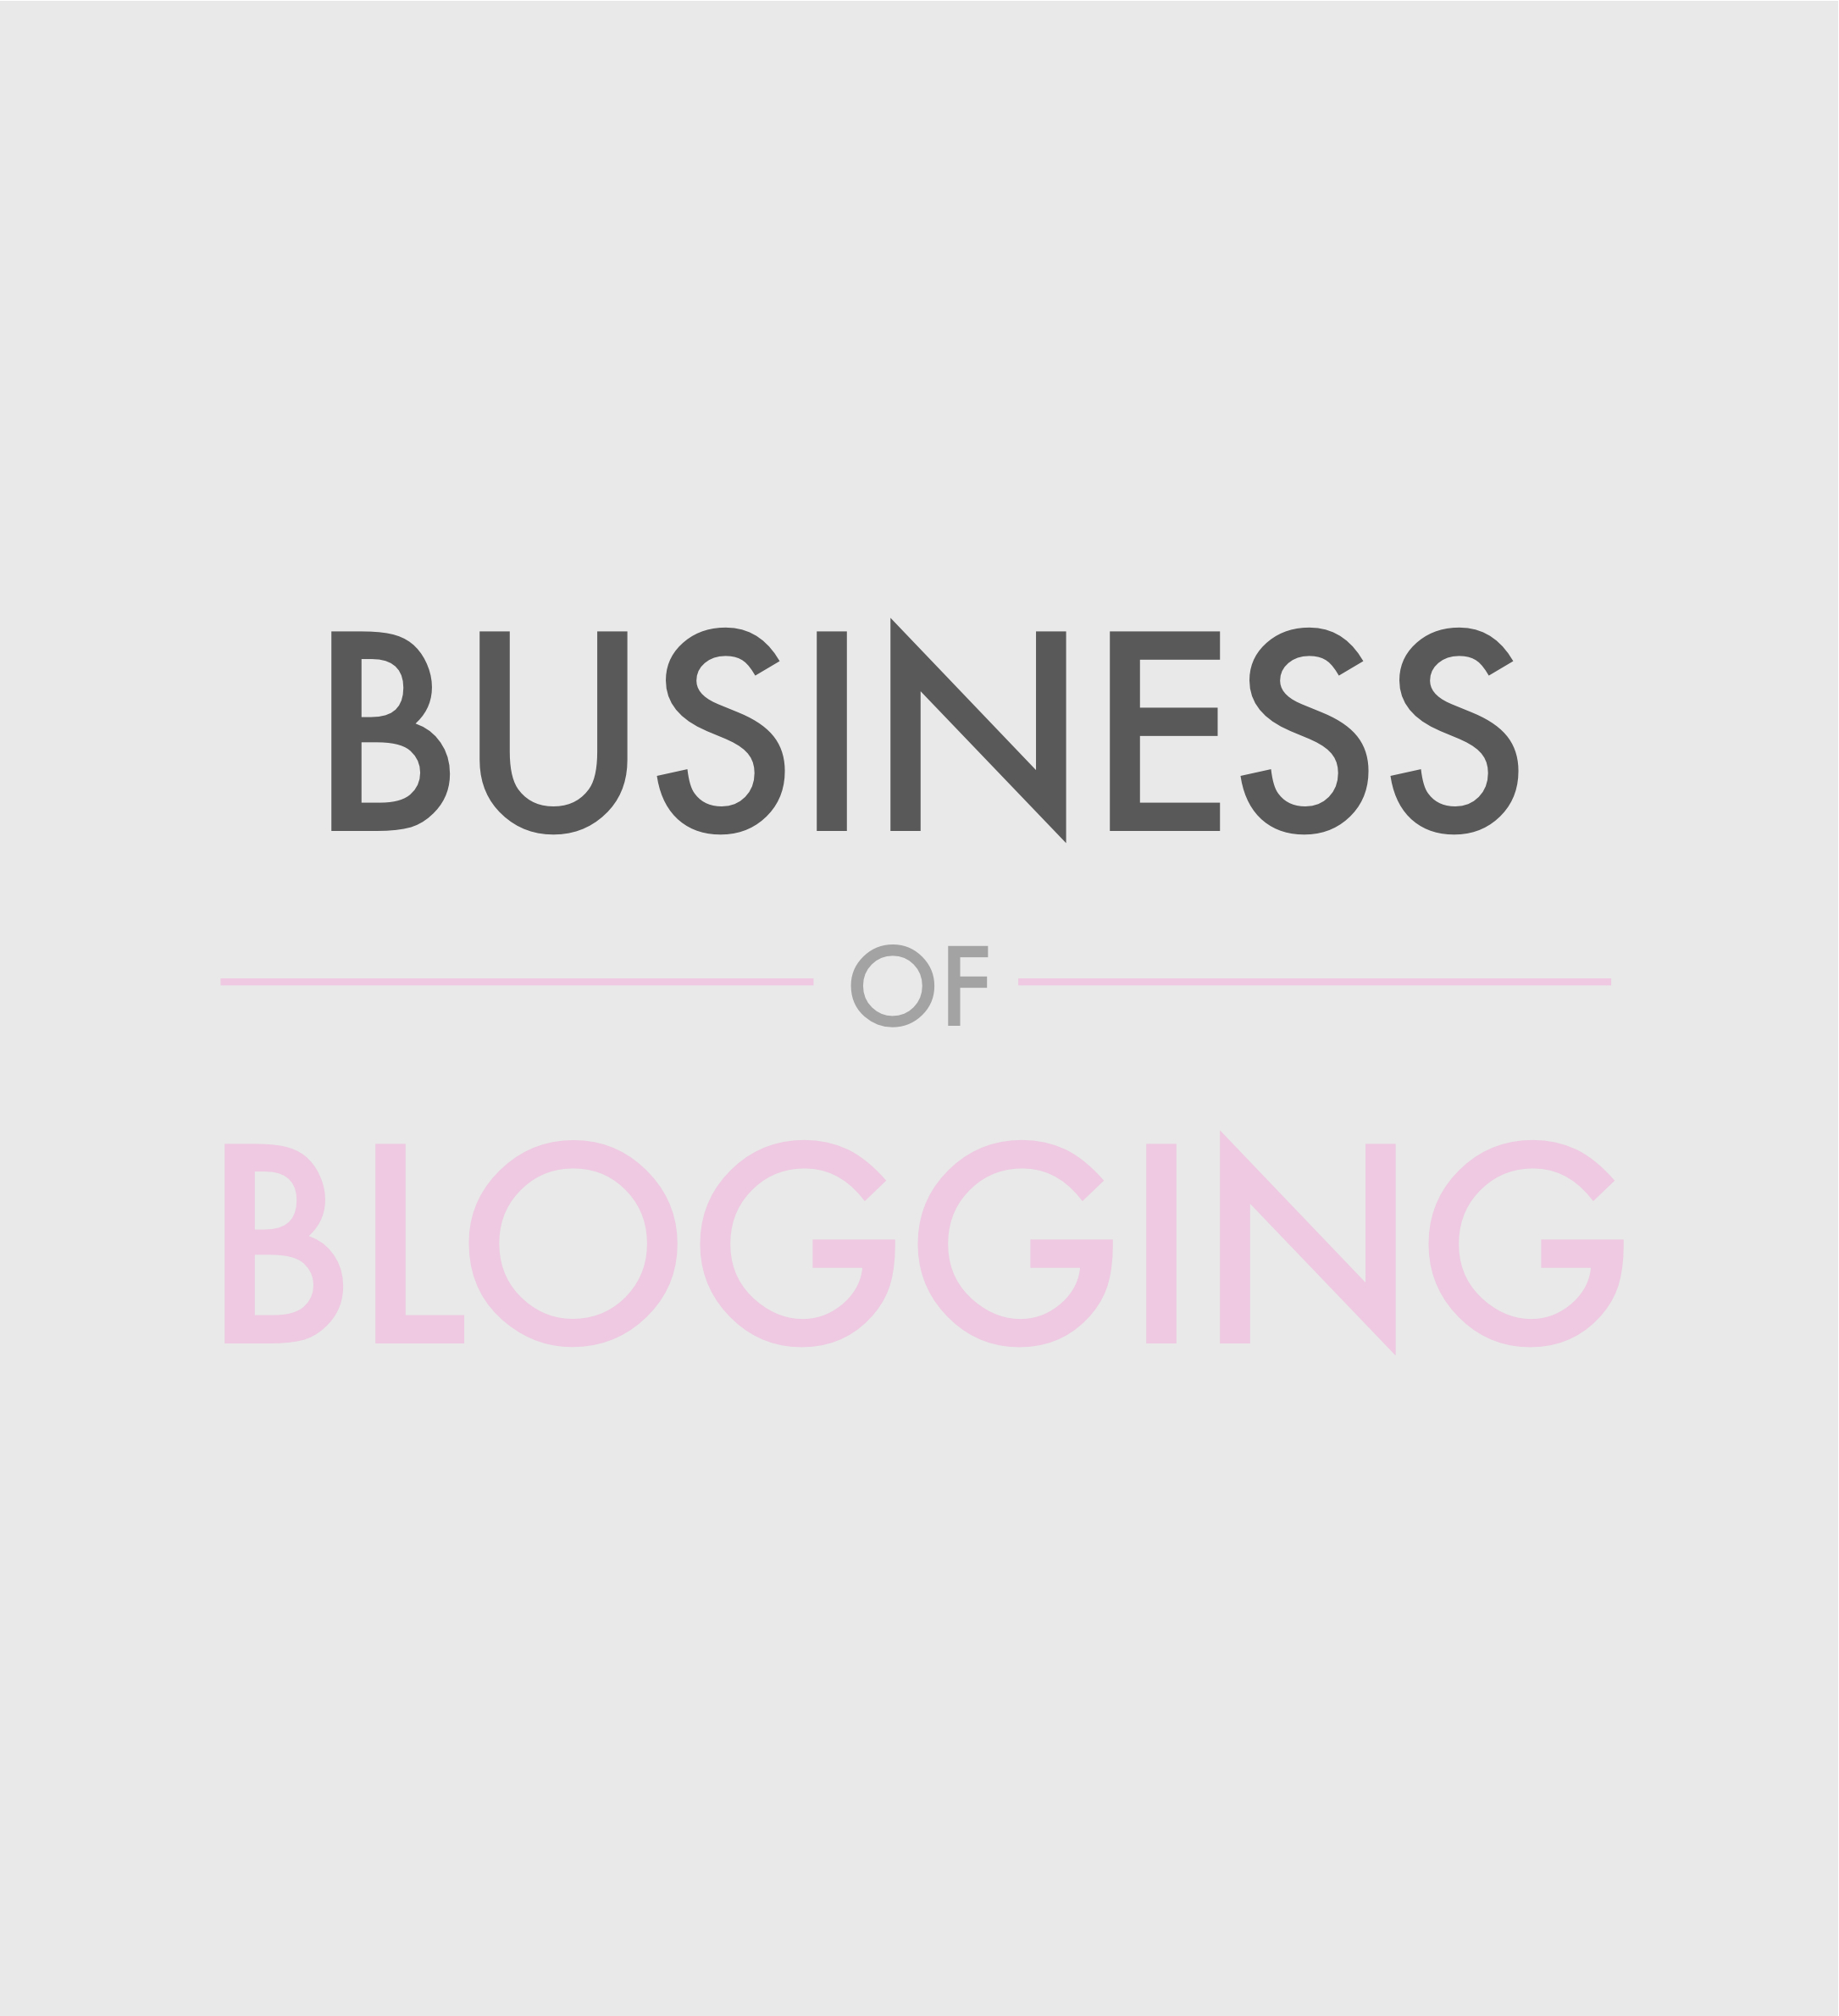 Business of Blogging